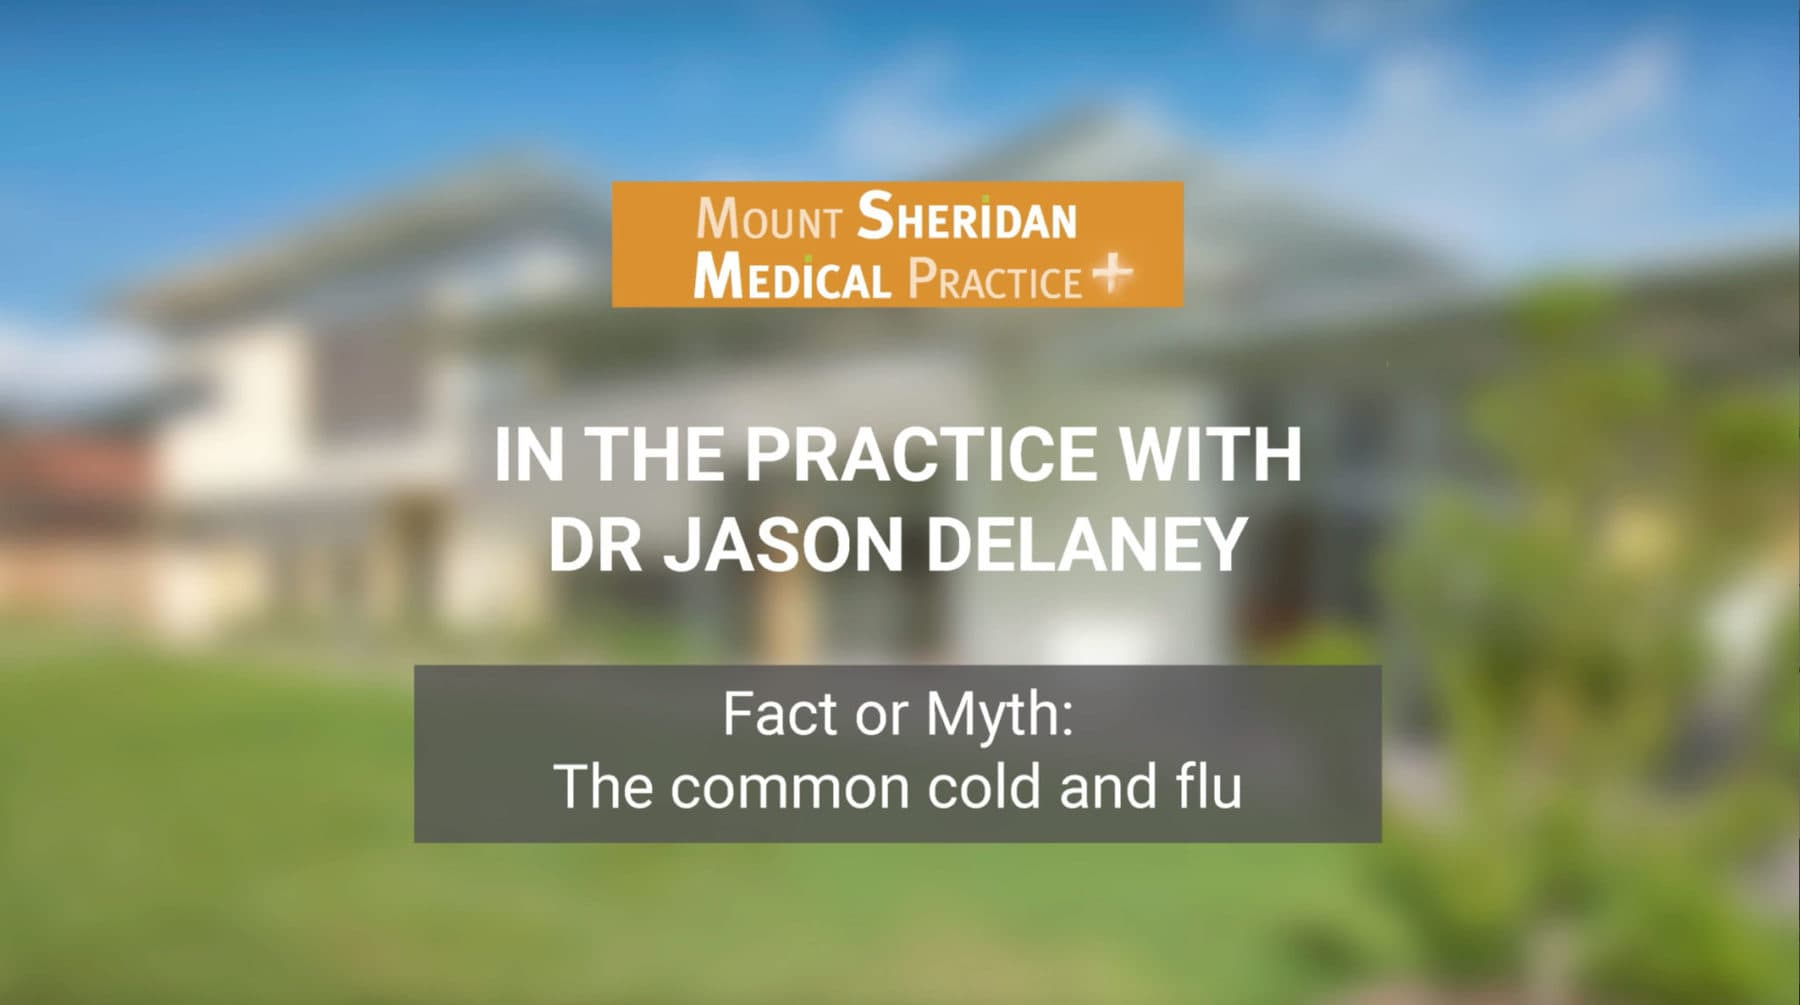 Fact or Myth: The common cold and the flu